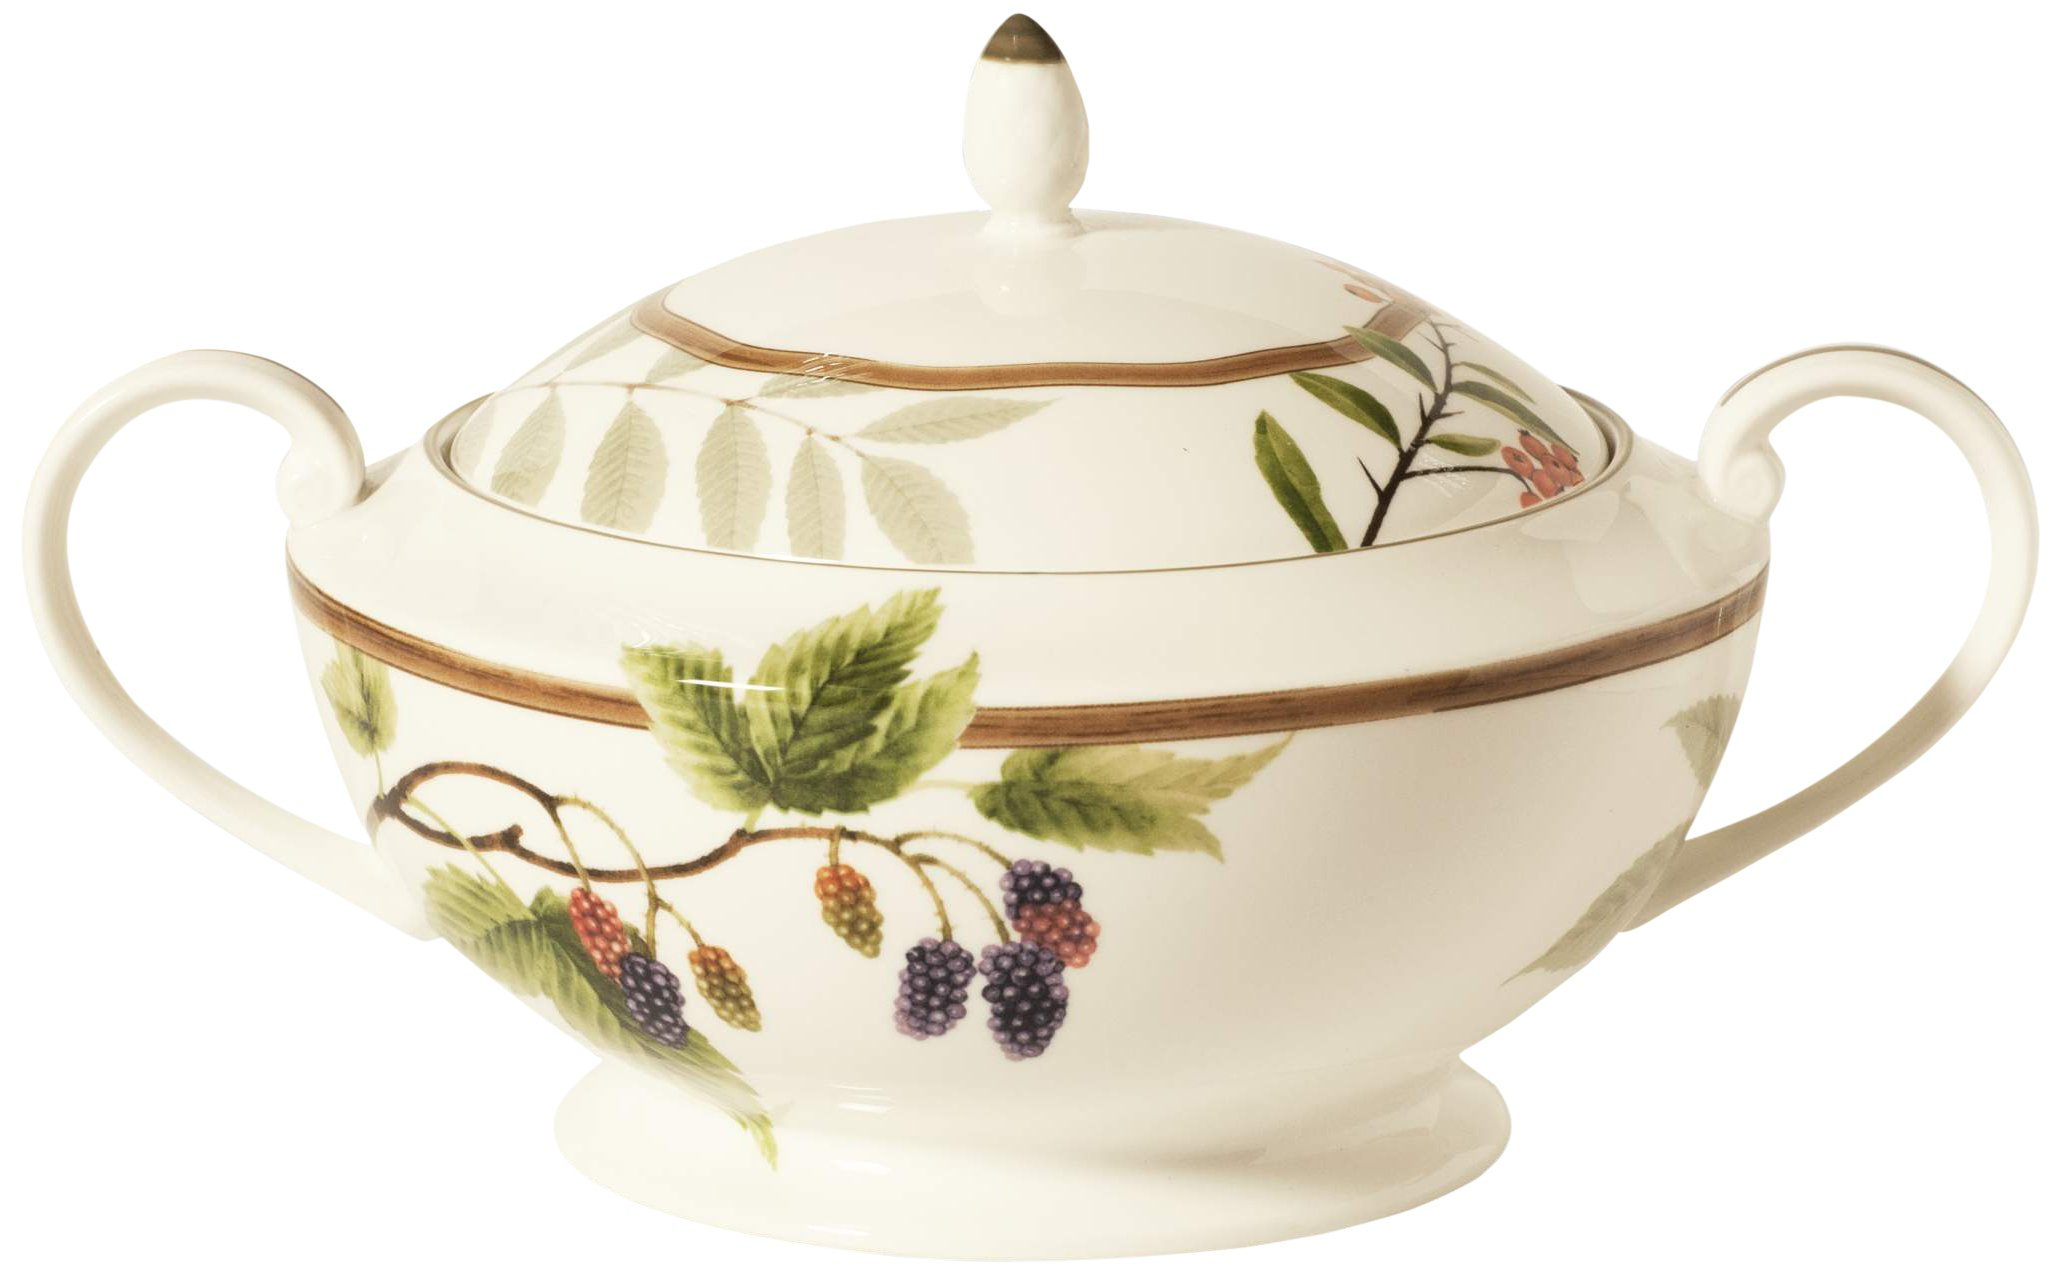 Noritake Berries and Brambles Casserole Server, 88-Ounce